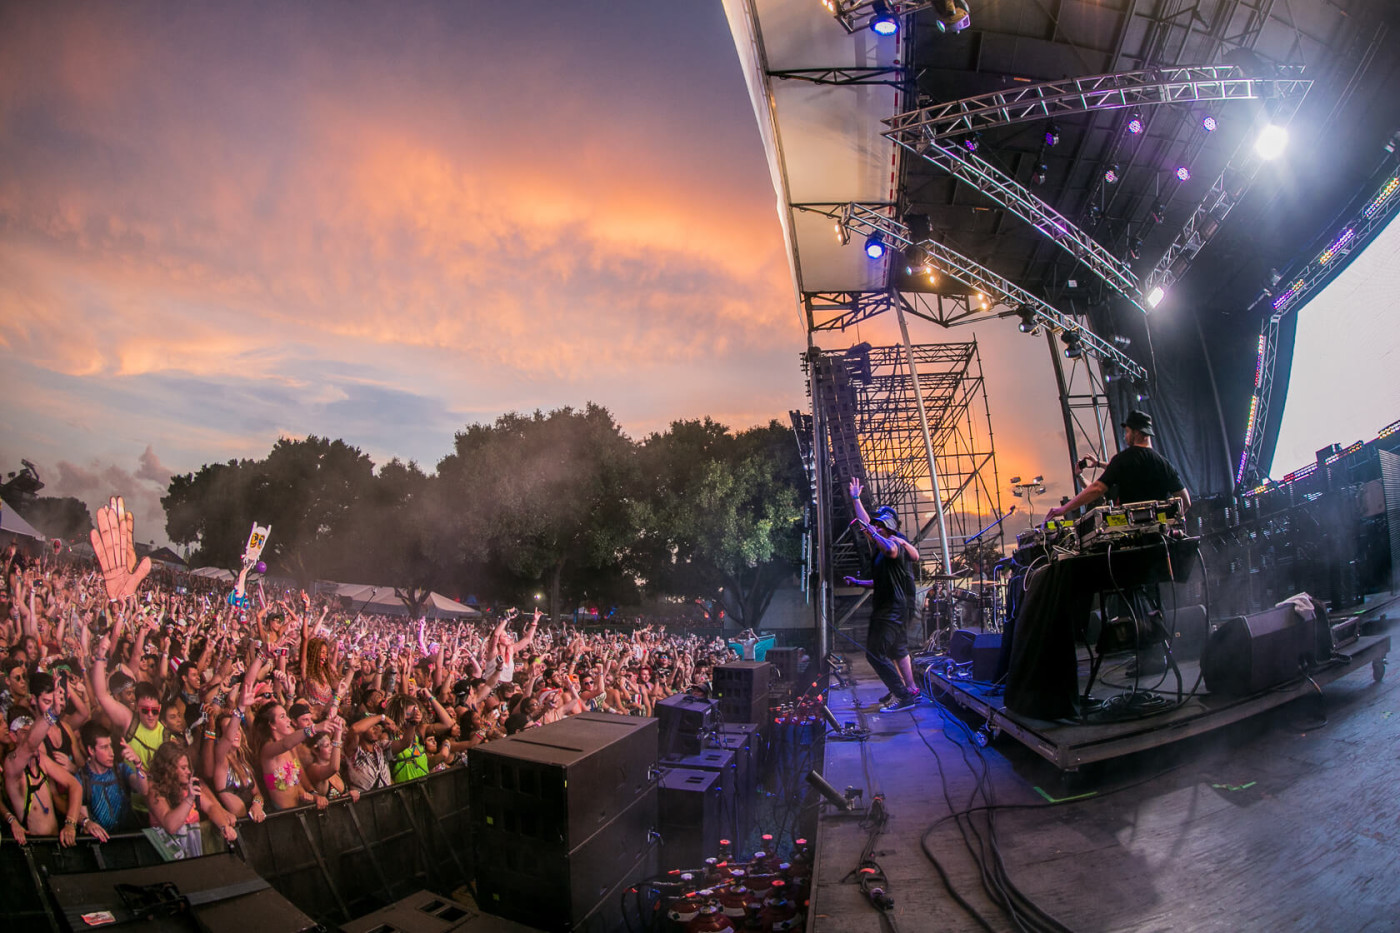 Keys N Krates performing at Sunset Music Festival 2015